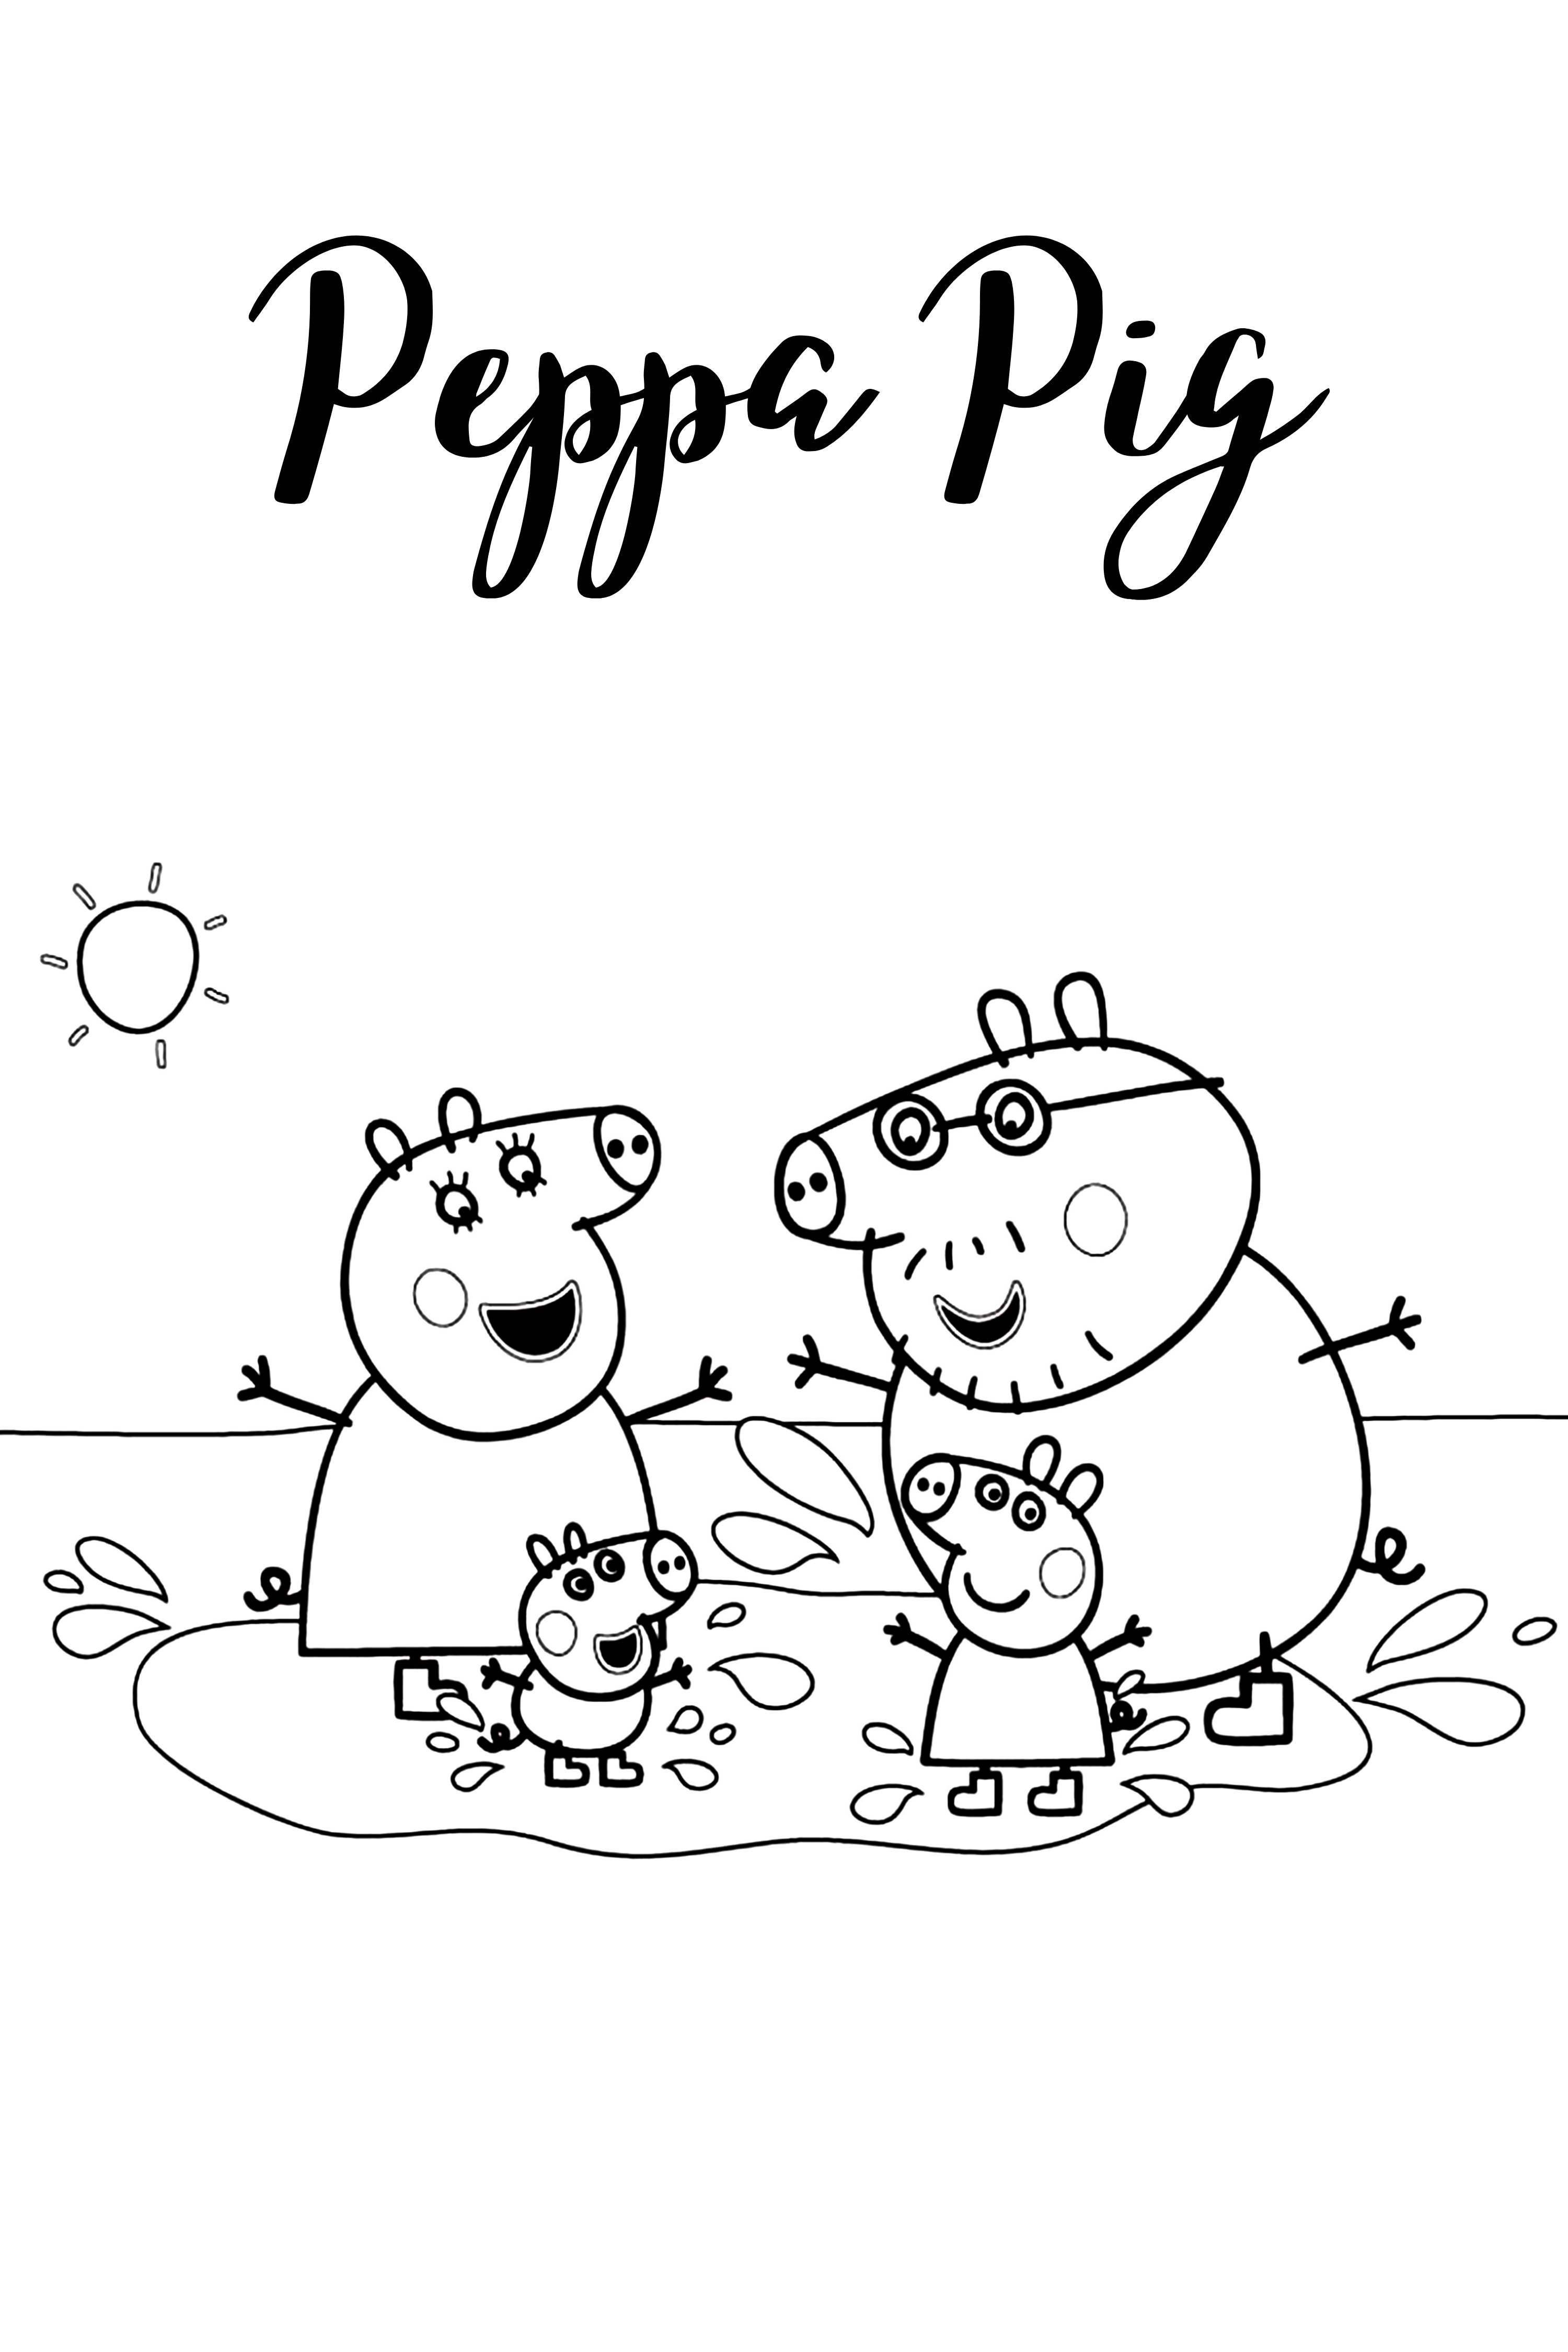 50 Peppa Pig Coloring Pages For Kids Peppa Pig Coloring Pages Cartoon Coloring Pages Cute Coloring Pages